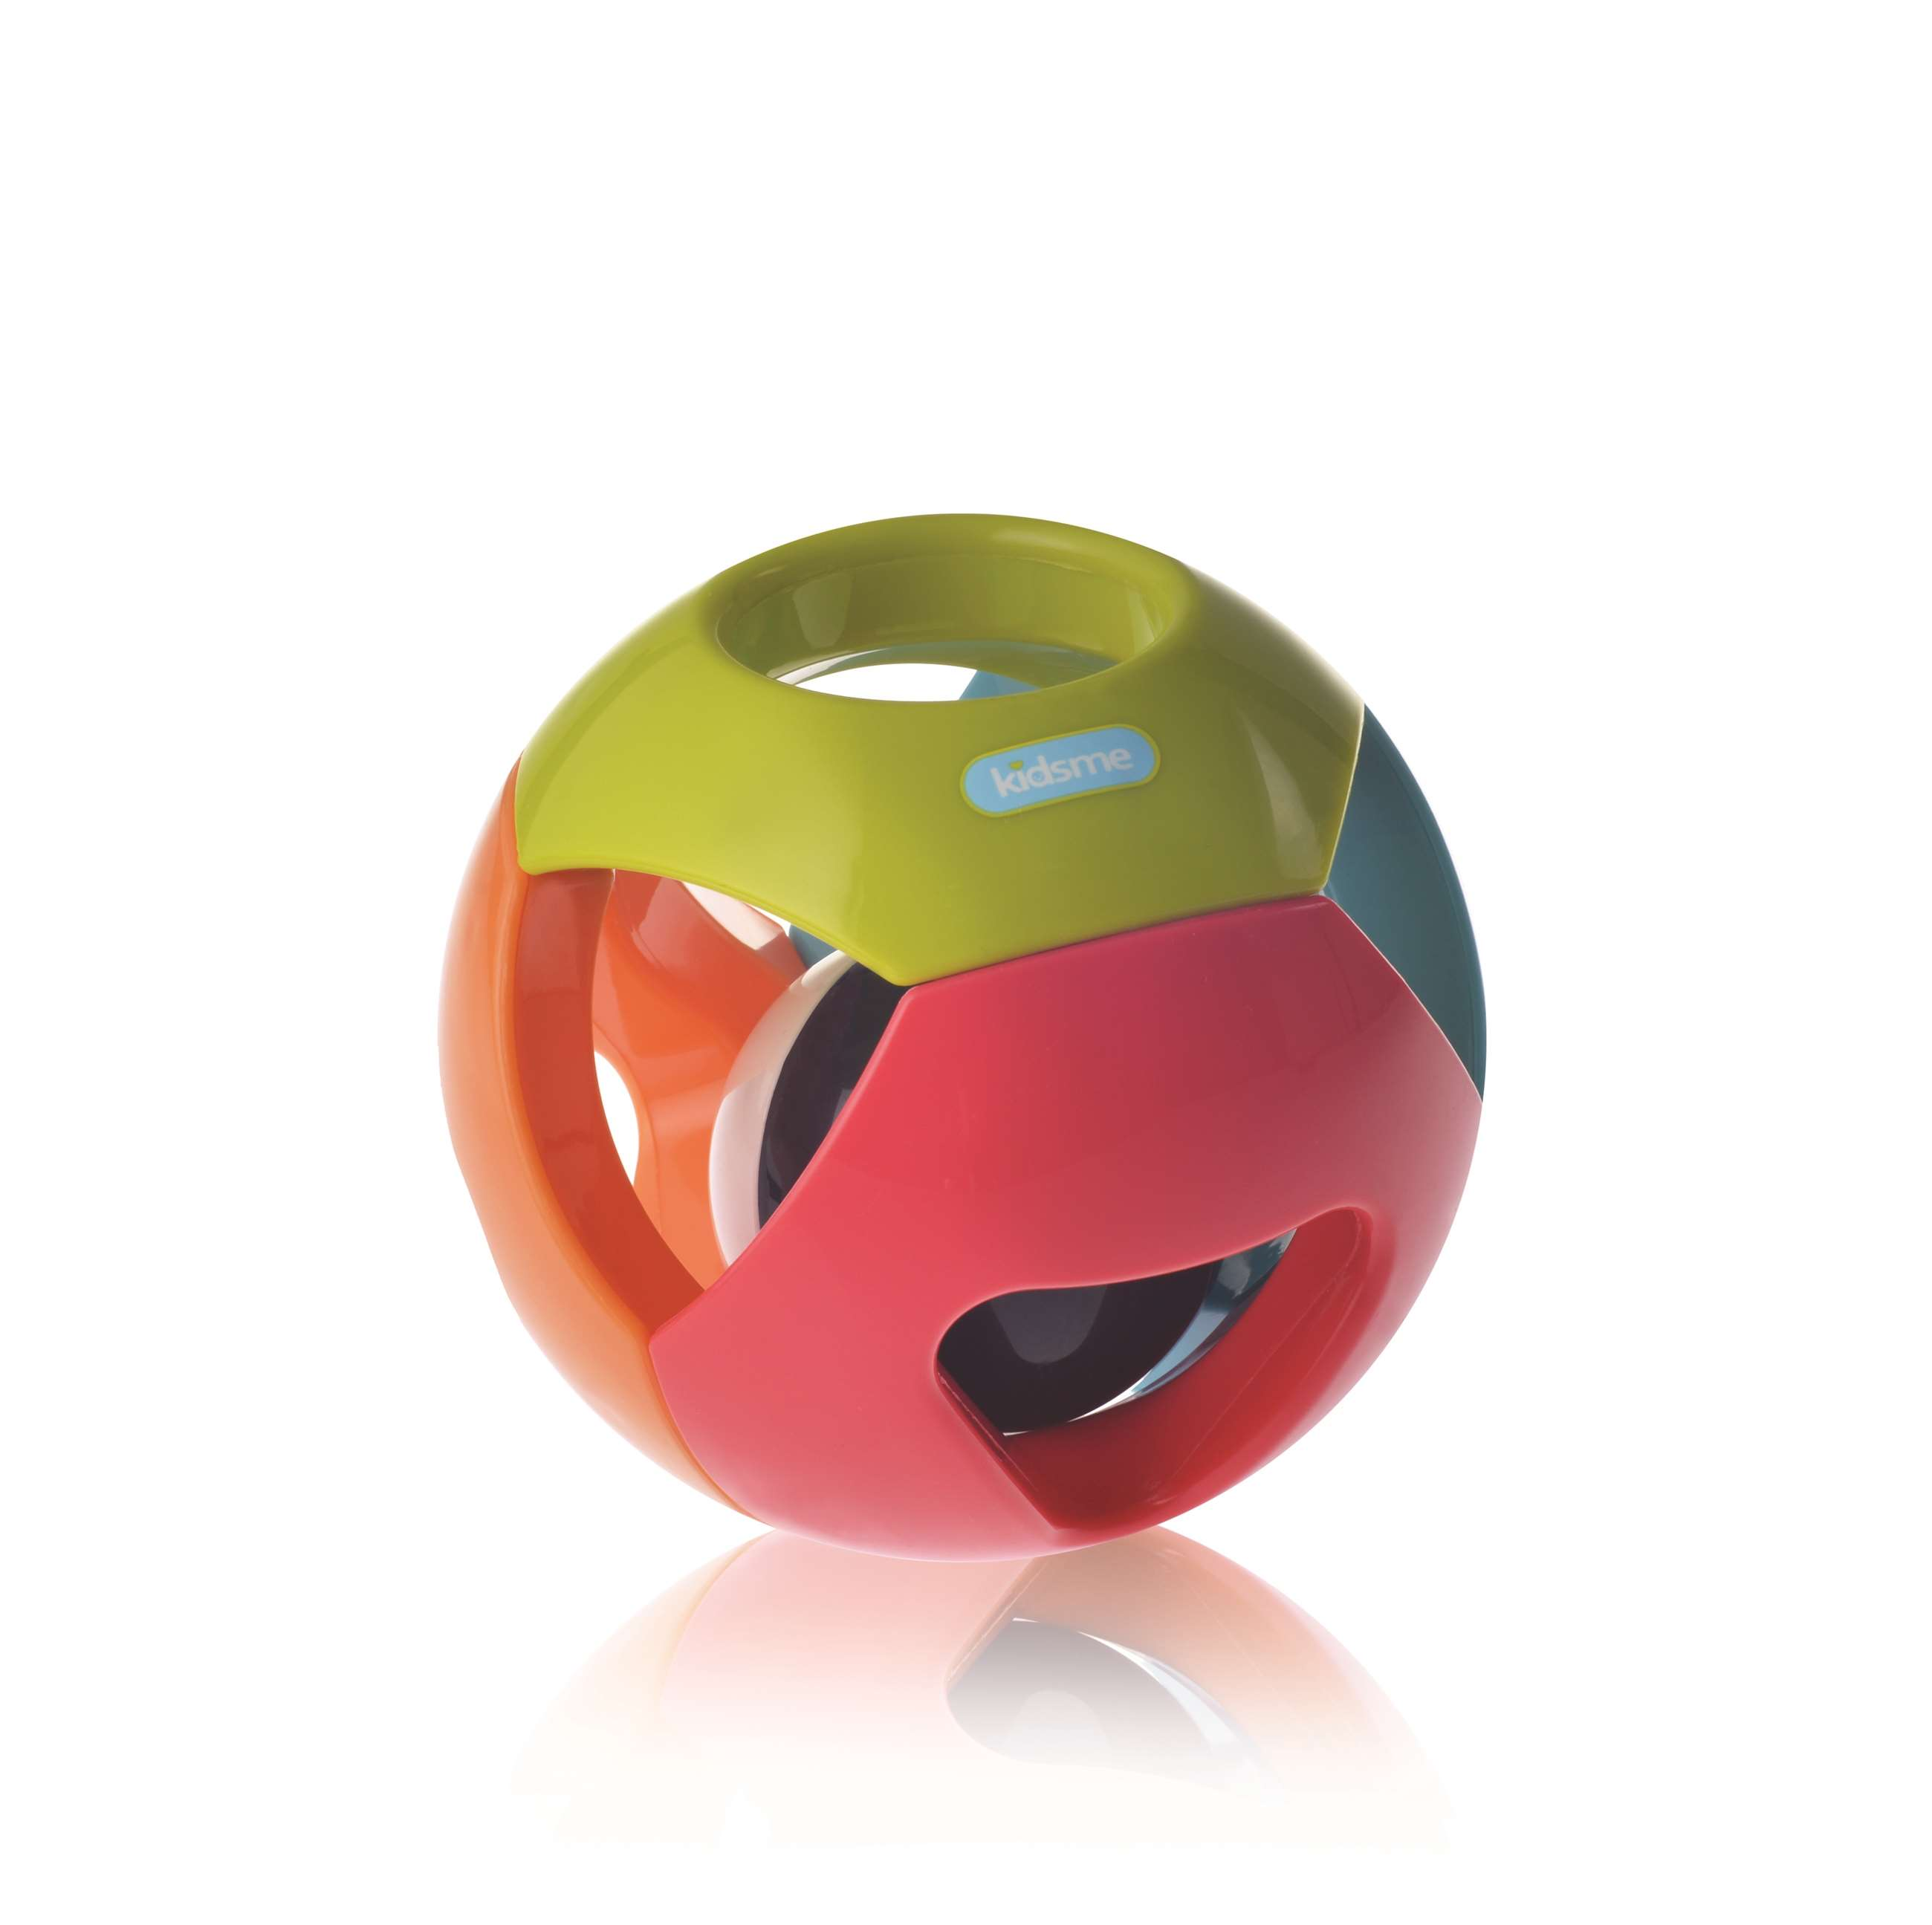 2630 - kidsme play and learn ball - 9266